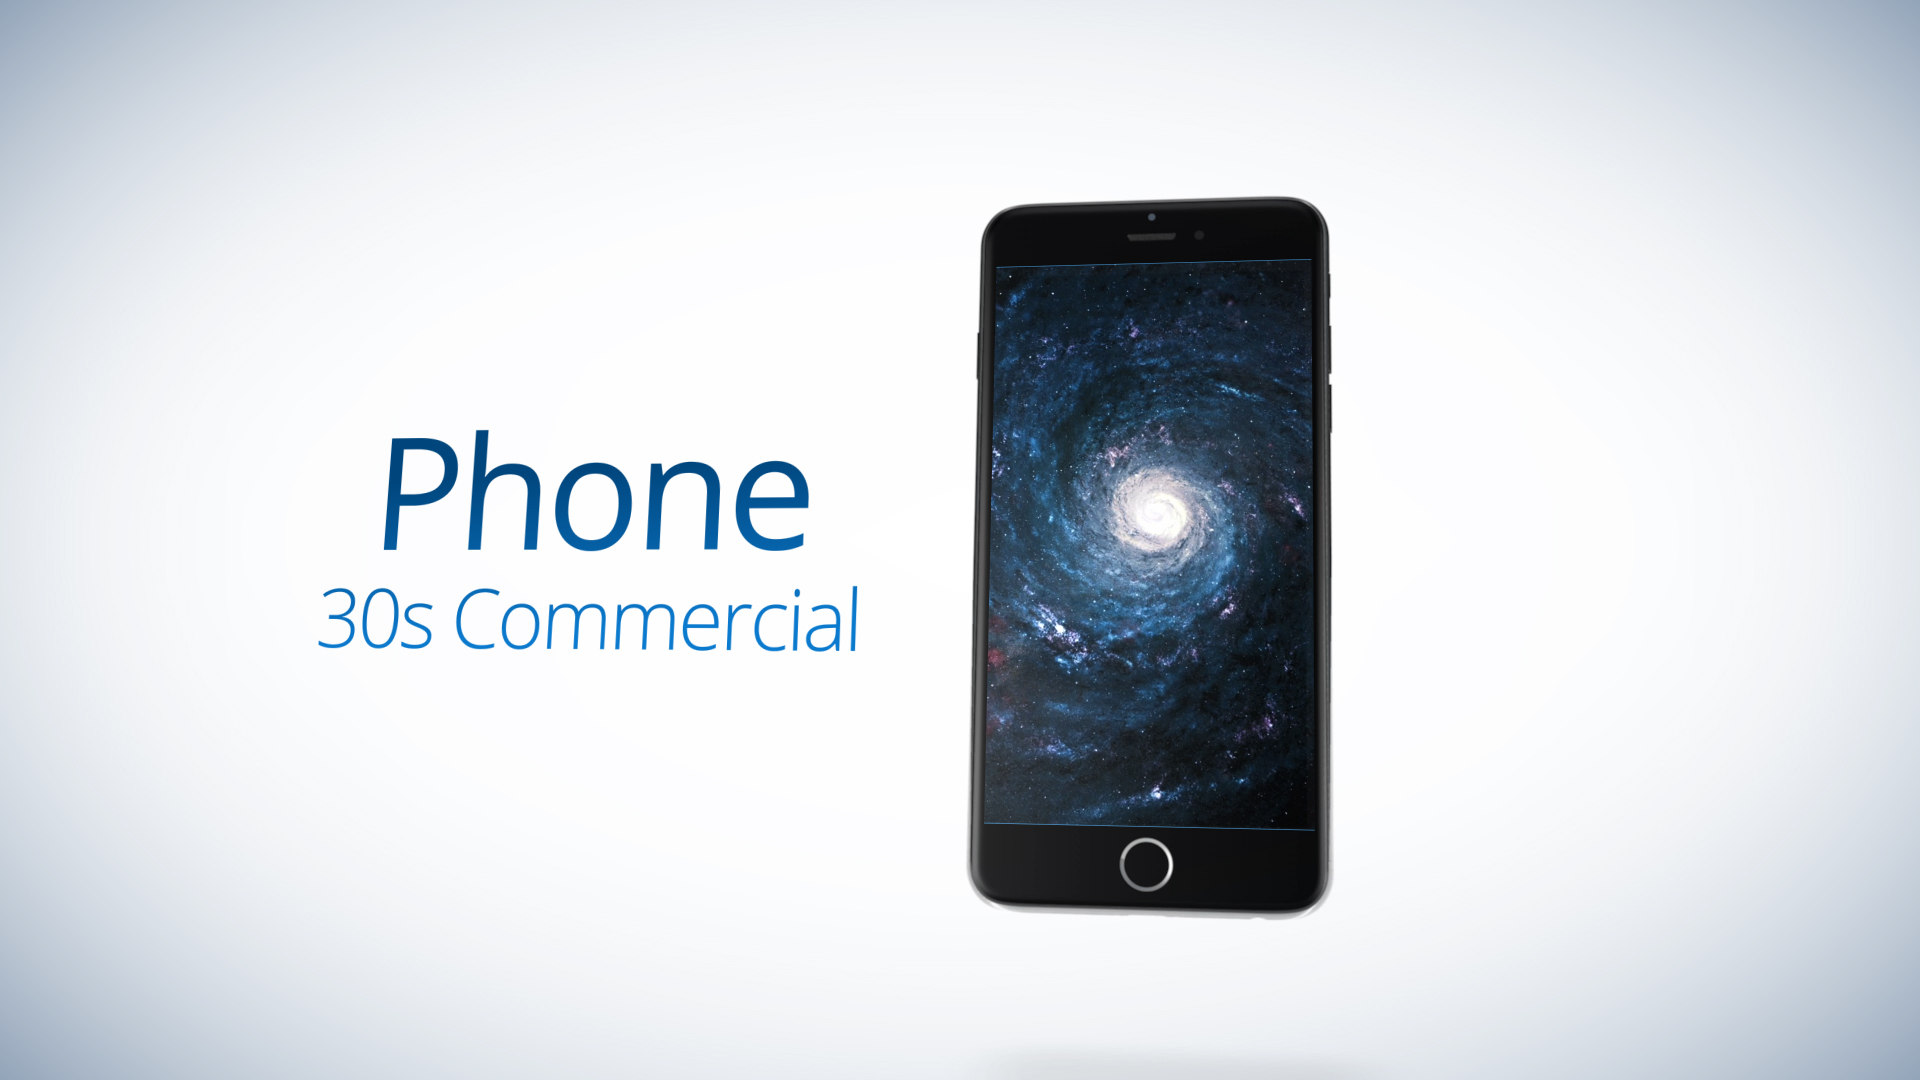 phone 30s commercial after effects template. Black Bedroom Furniture Sets. Home Design Ideas